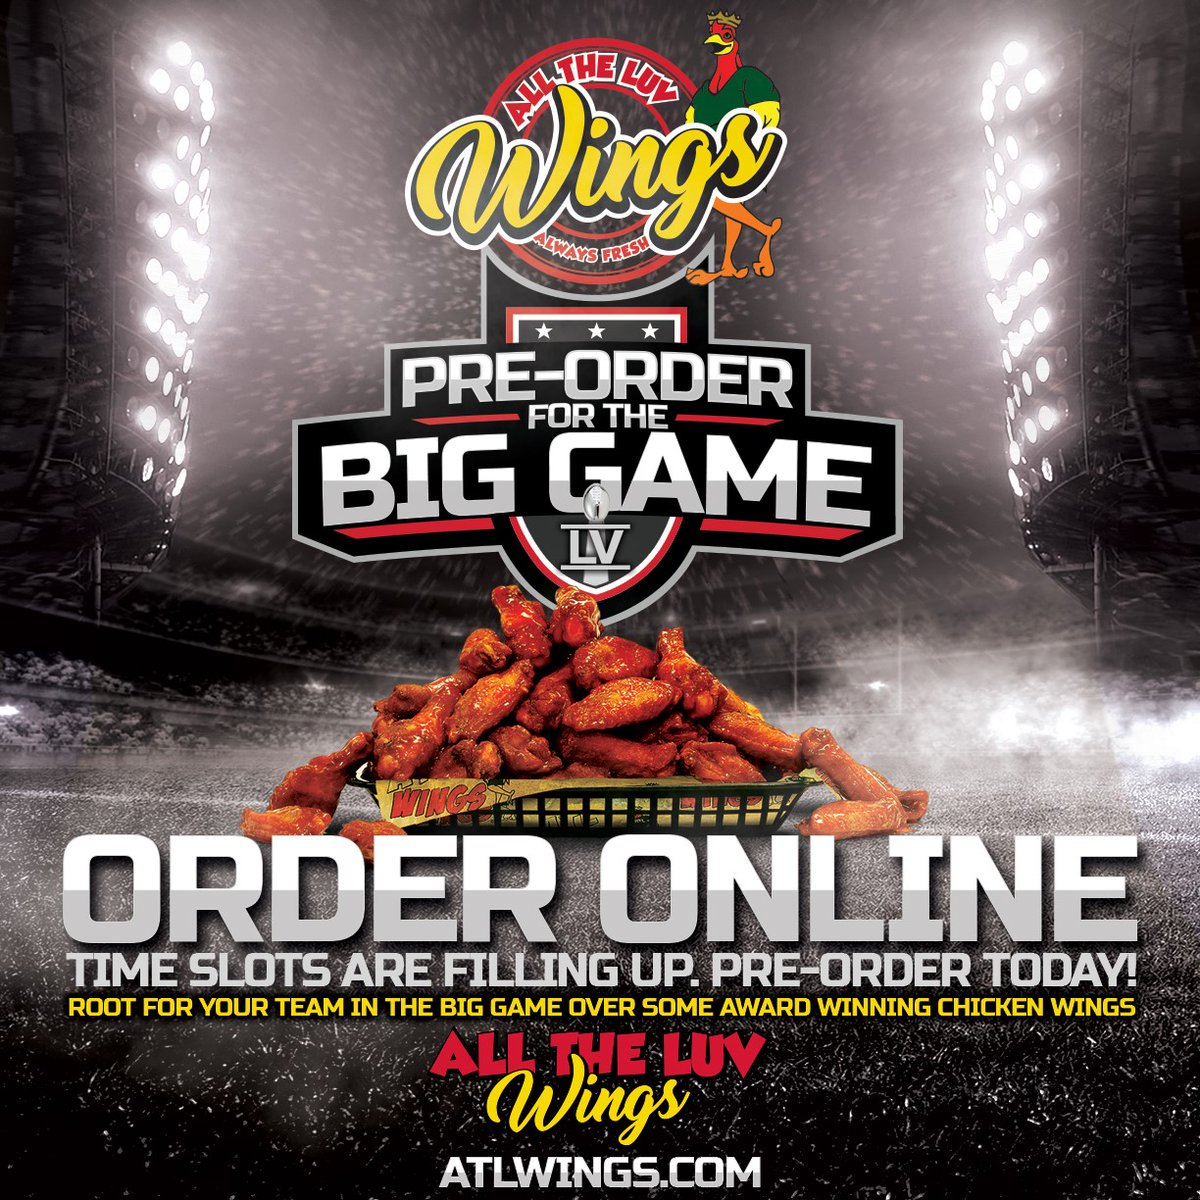 WIN A SUPER GIFT CARD for THE BIG GAME FEB 7, 2021! Simply retweet and FOLLOW @atlwingsAZ and have a chance to win a $250 gift card --- now that is a LOT of WINGS! Winner will be announced on Feb 4th. https://t.co/uMVvLYEiSK